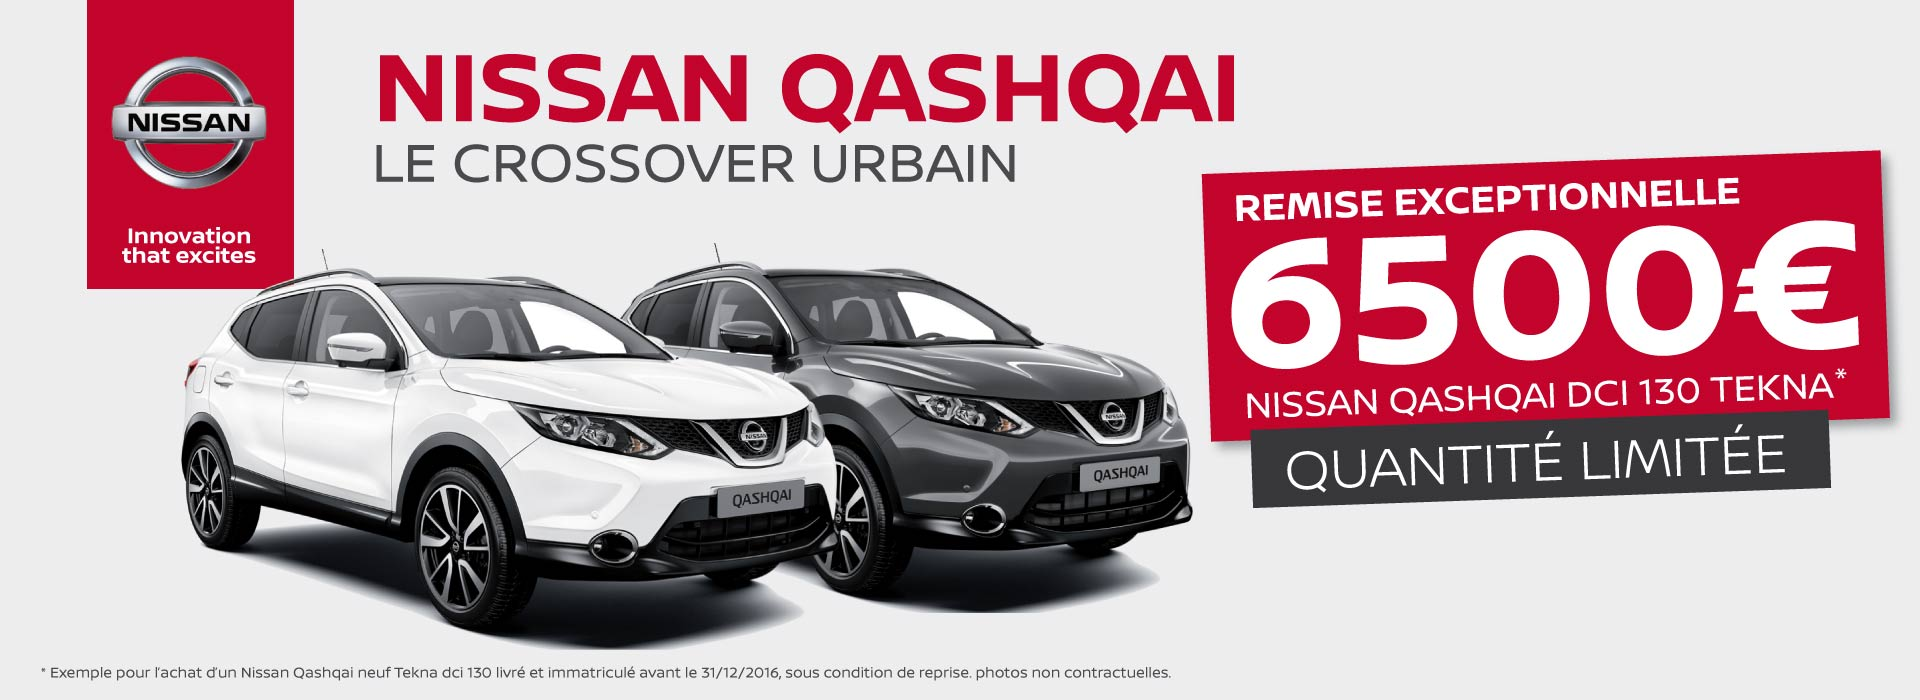 offre nissan qashqai nissan roncq. Black Bedroom Furniture Sets. Home Design Ideas